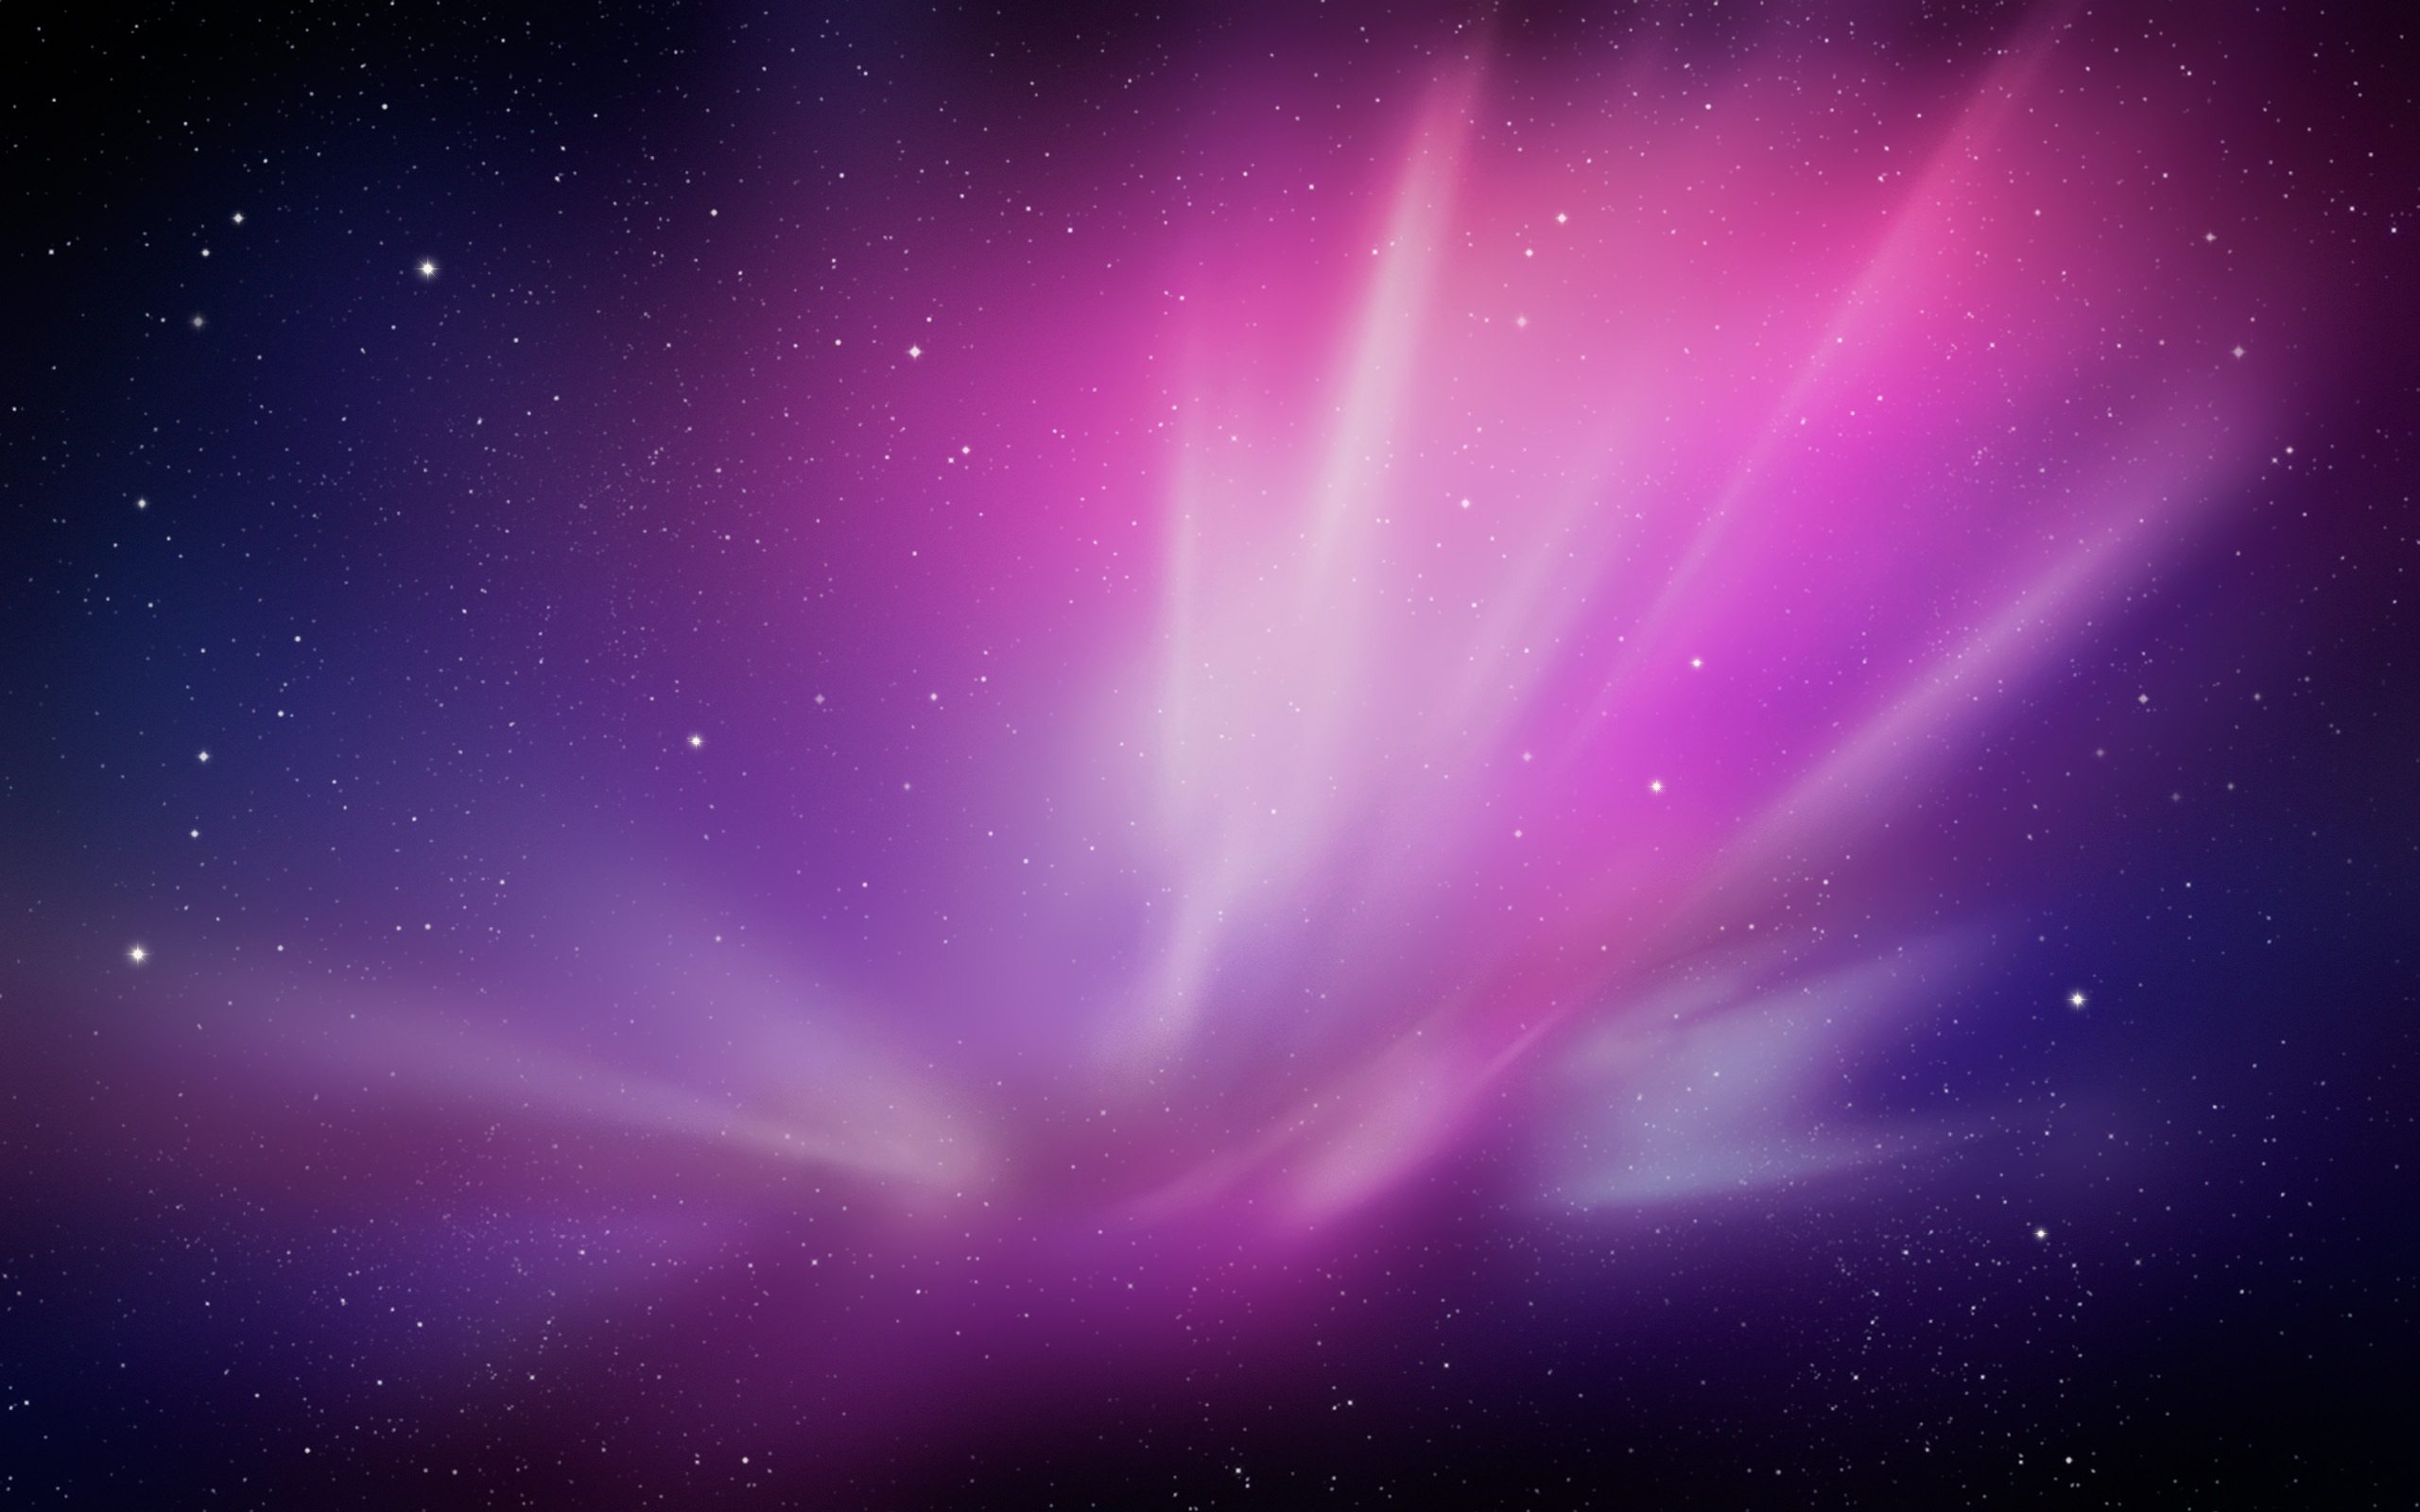 Mac OS X Wallpaper from my new Macbook from Spiritual   hosted by 2560x1600